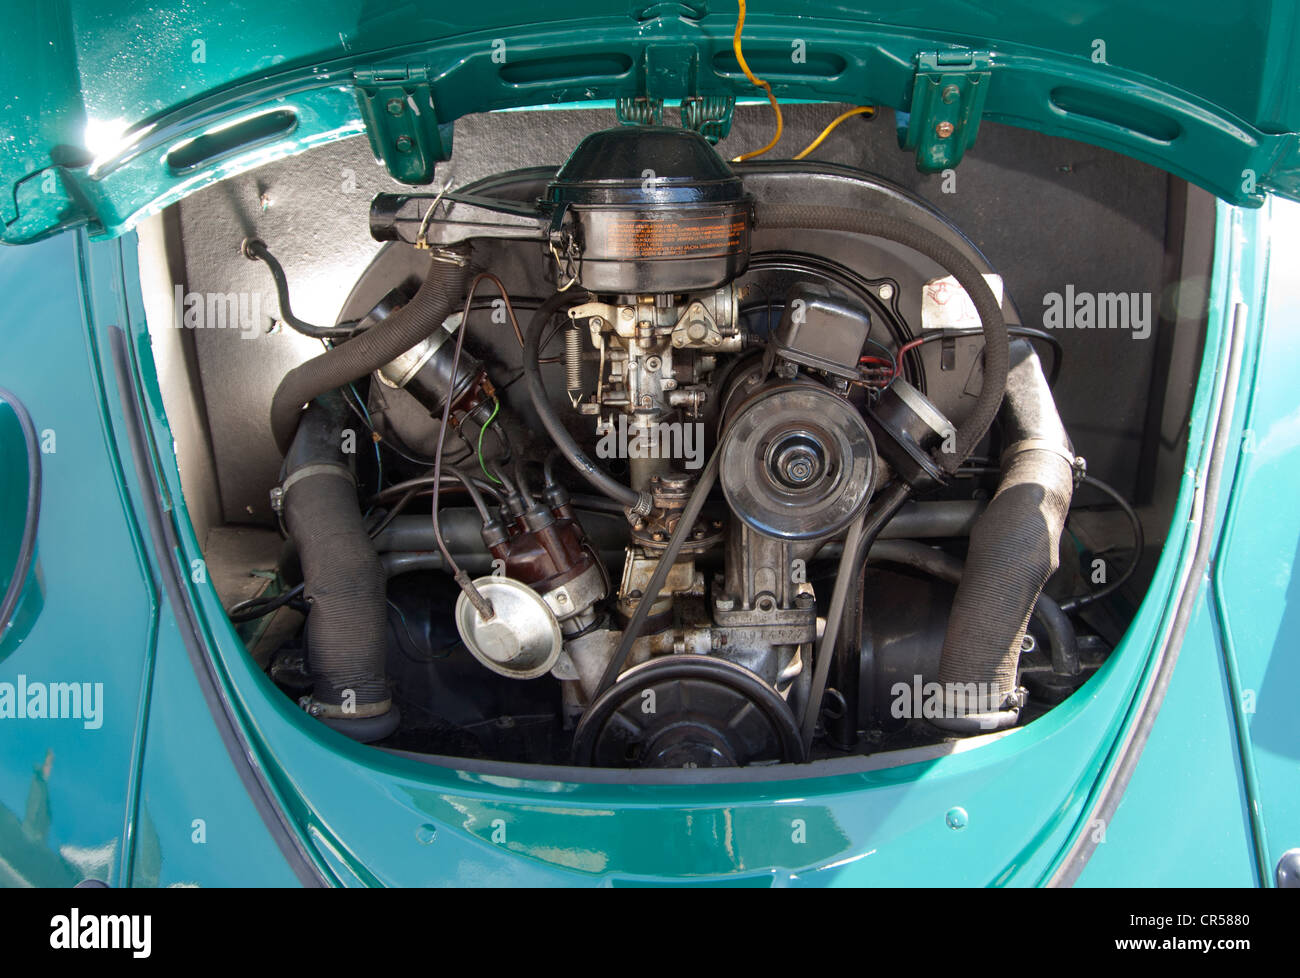 Vw Beetle Classic Volkswagen Car Rear Mounted Air Cooled